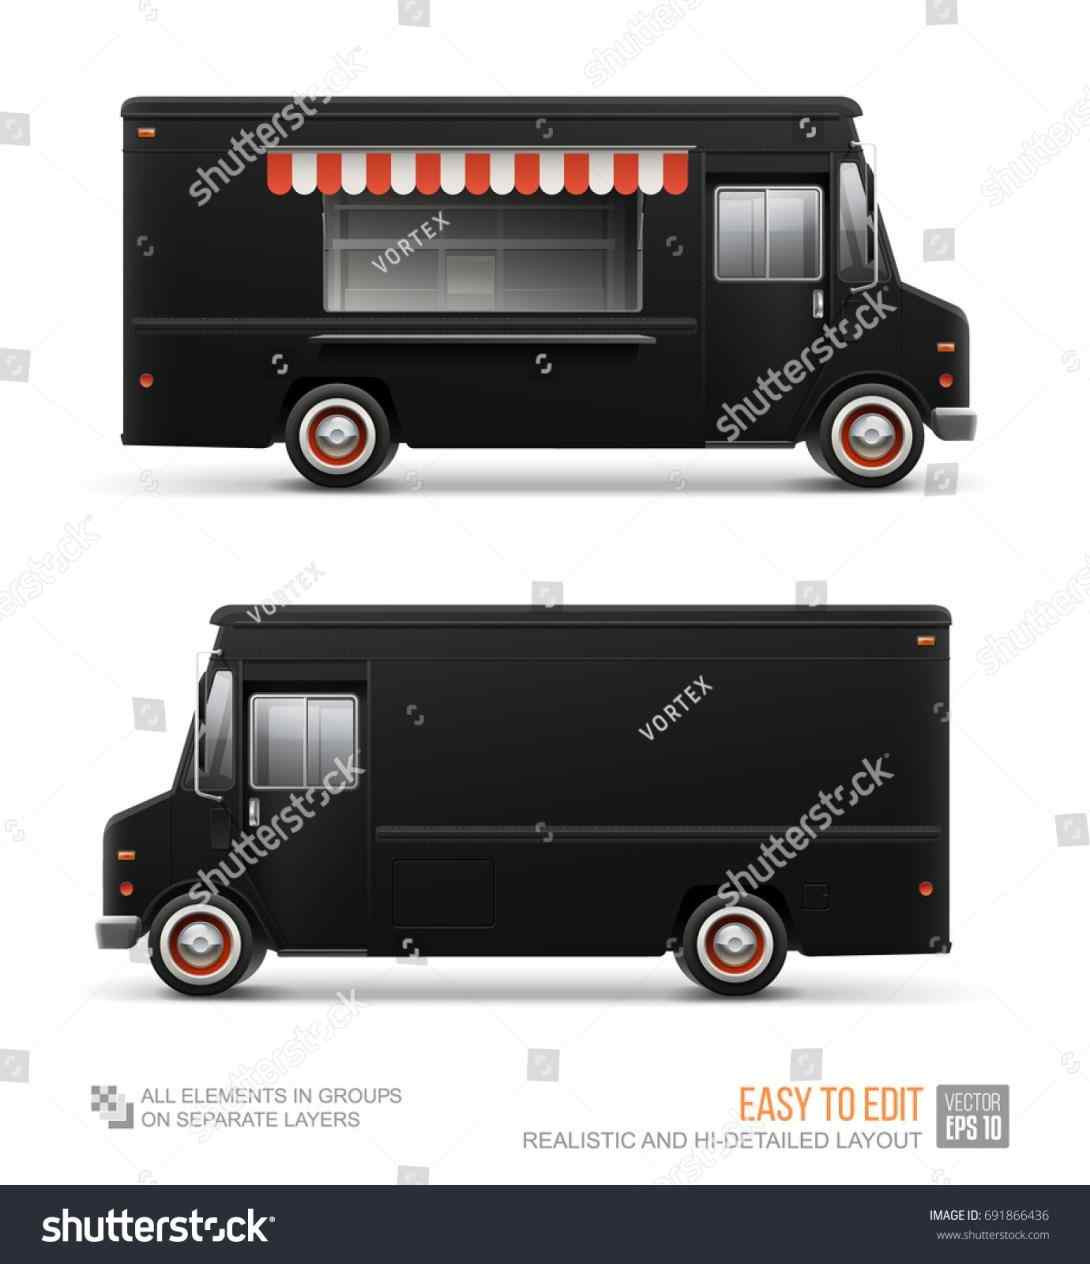 1090x1264 Food Truck Layout Template Vector Food Truck Corporate Identity